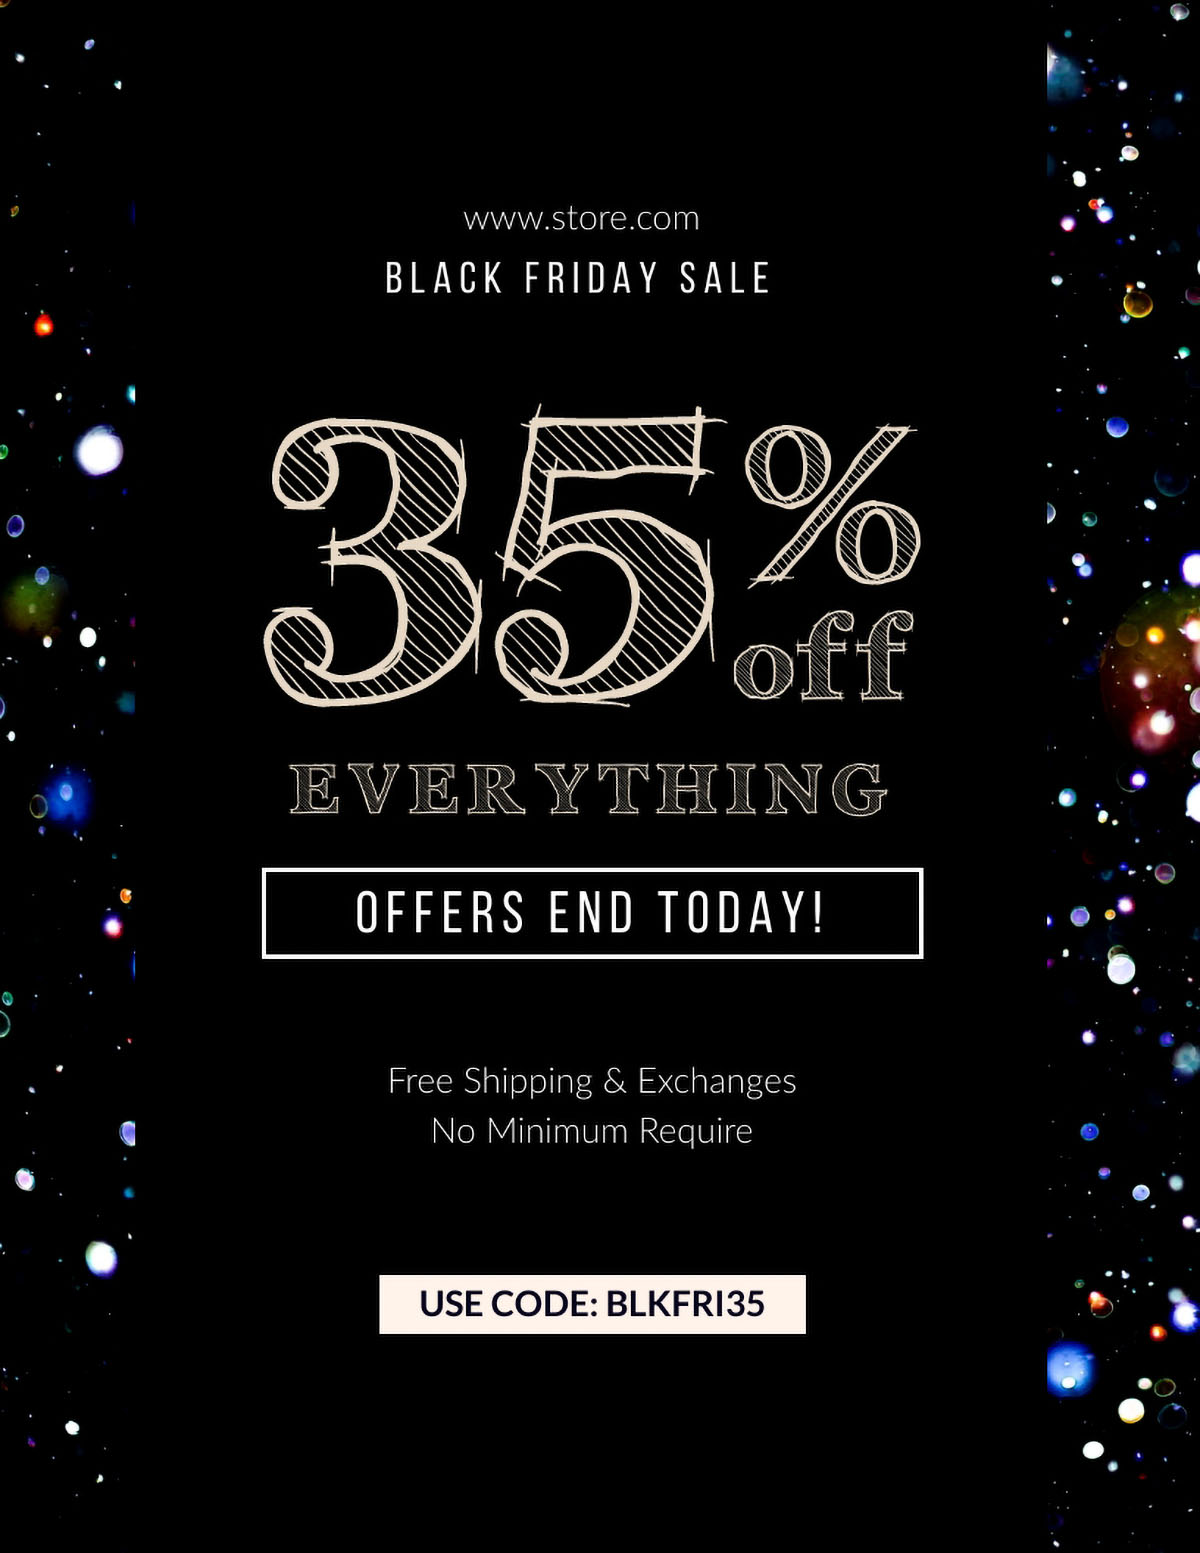 flyer design - black friday sale flyer template